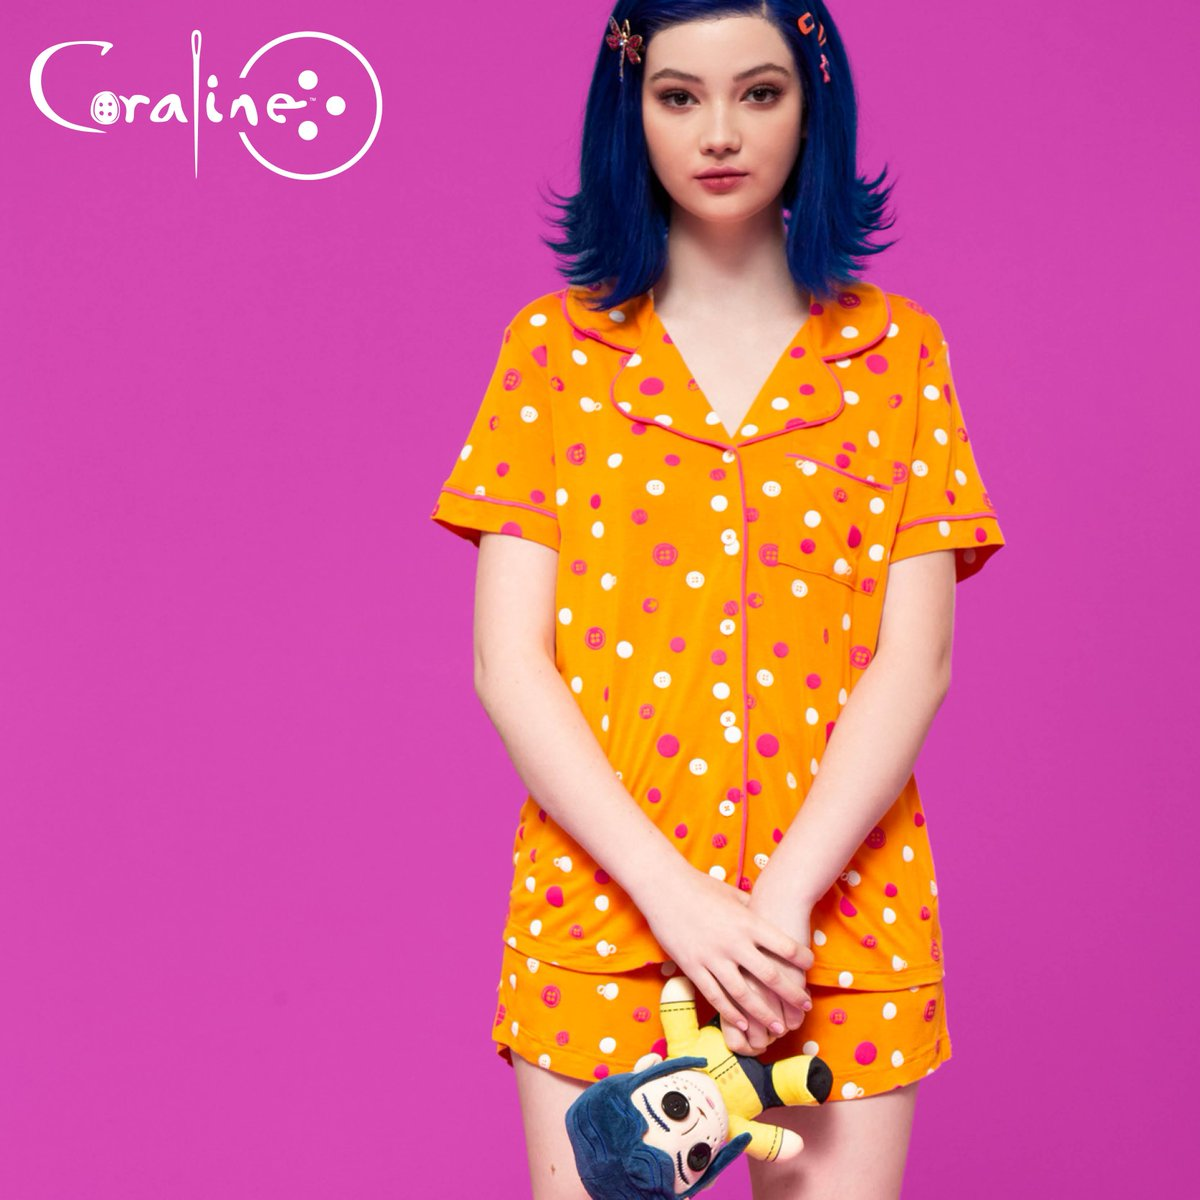 Hot Topic On Twitter A New Coraline Collection Just For You Our Favorite Little Doll Https T Co 2irtjnfy4c